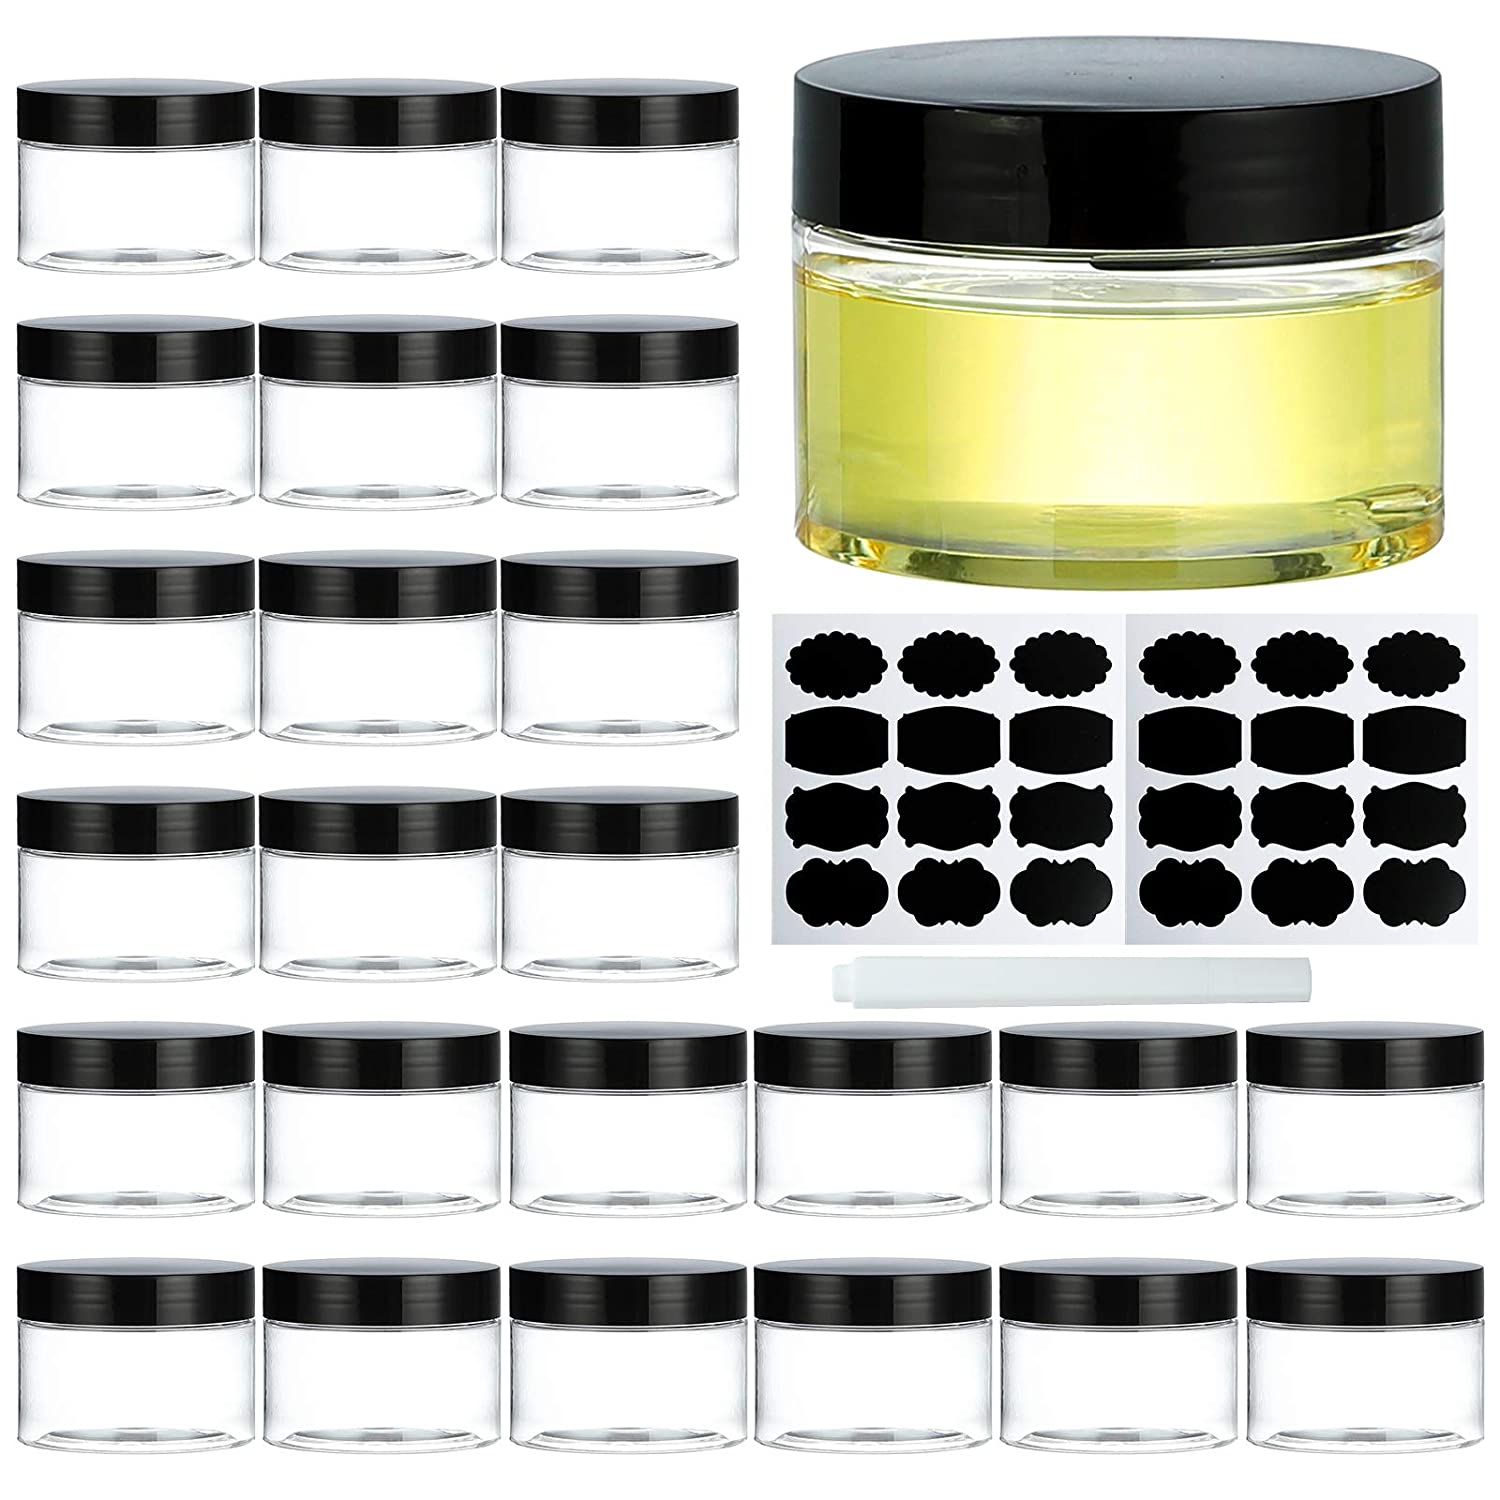 Plastic Jars with Lids, Dabacc 24Pcs 4Oz Clear Plastic Travel Size Containers Storage Organizer for Slime Cosmetic Body Sugar Scrubs Beauty Supplies Leak Proof, Including 1 Pen and Labels